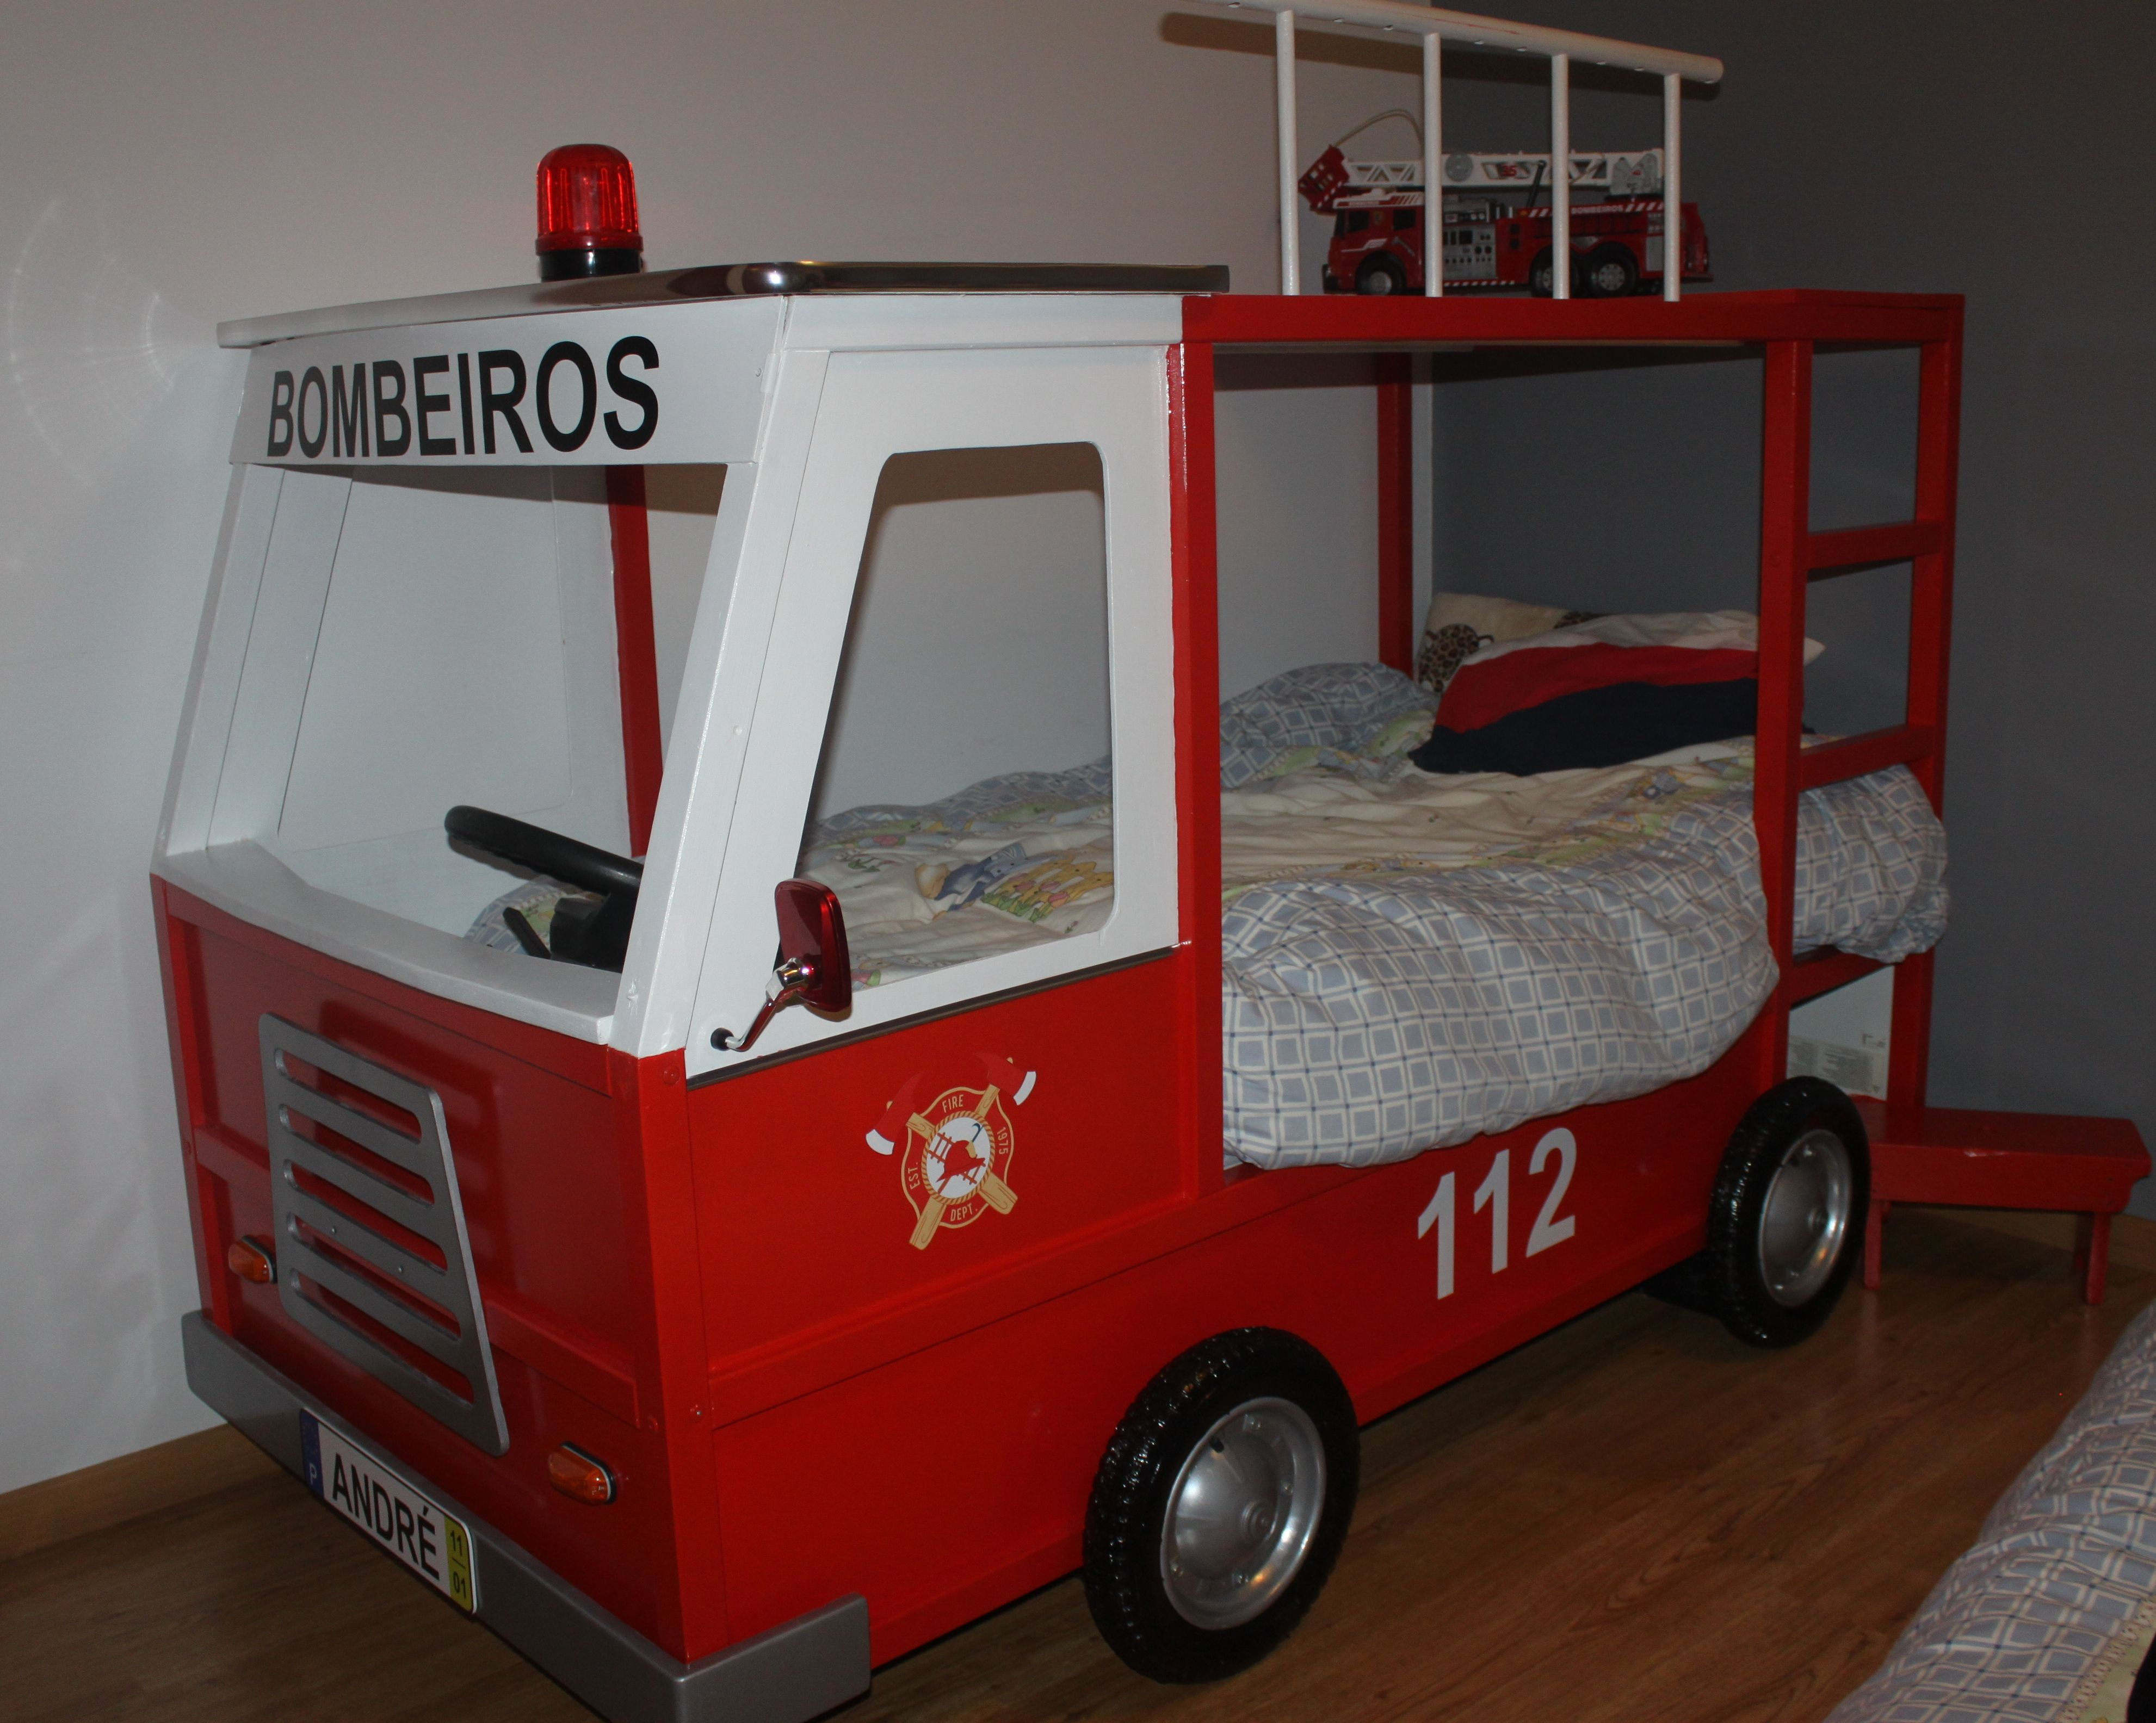 Cama carro de bombeiros 2 kura ikea hack fire truck bed as minhas bricolages pinterest - Ikea fire truck bed ...